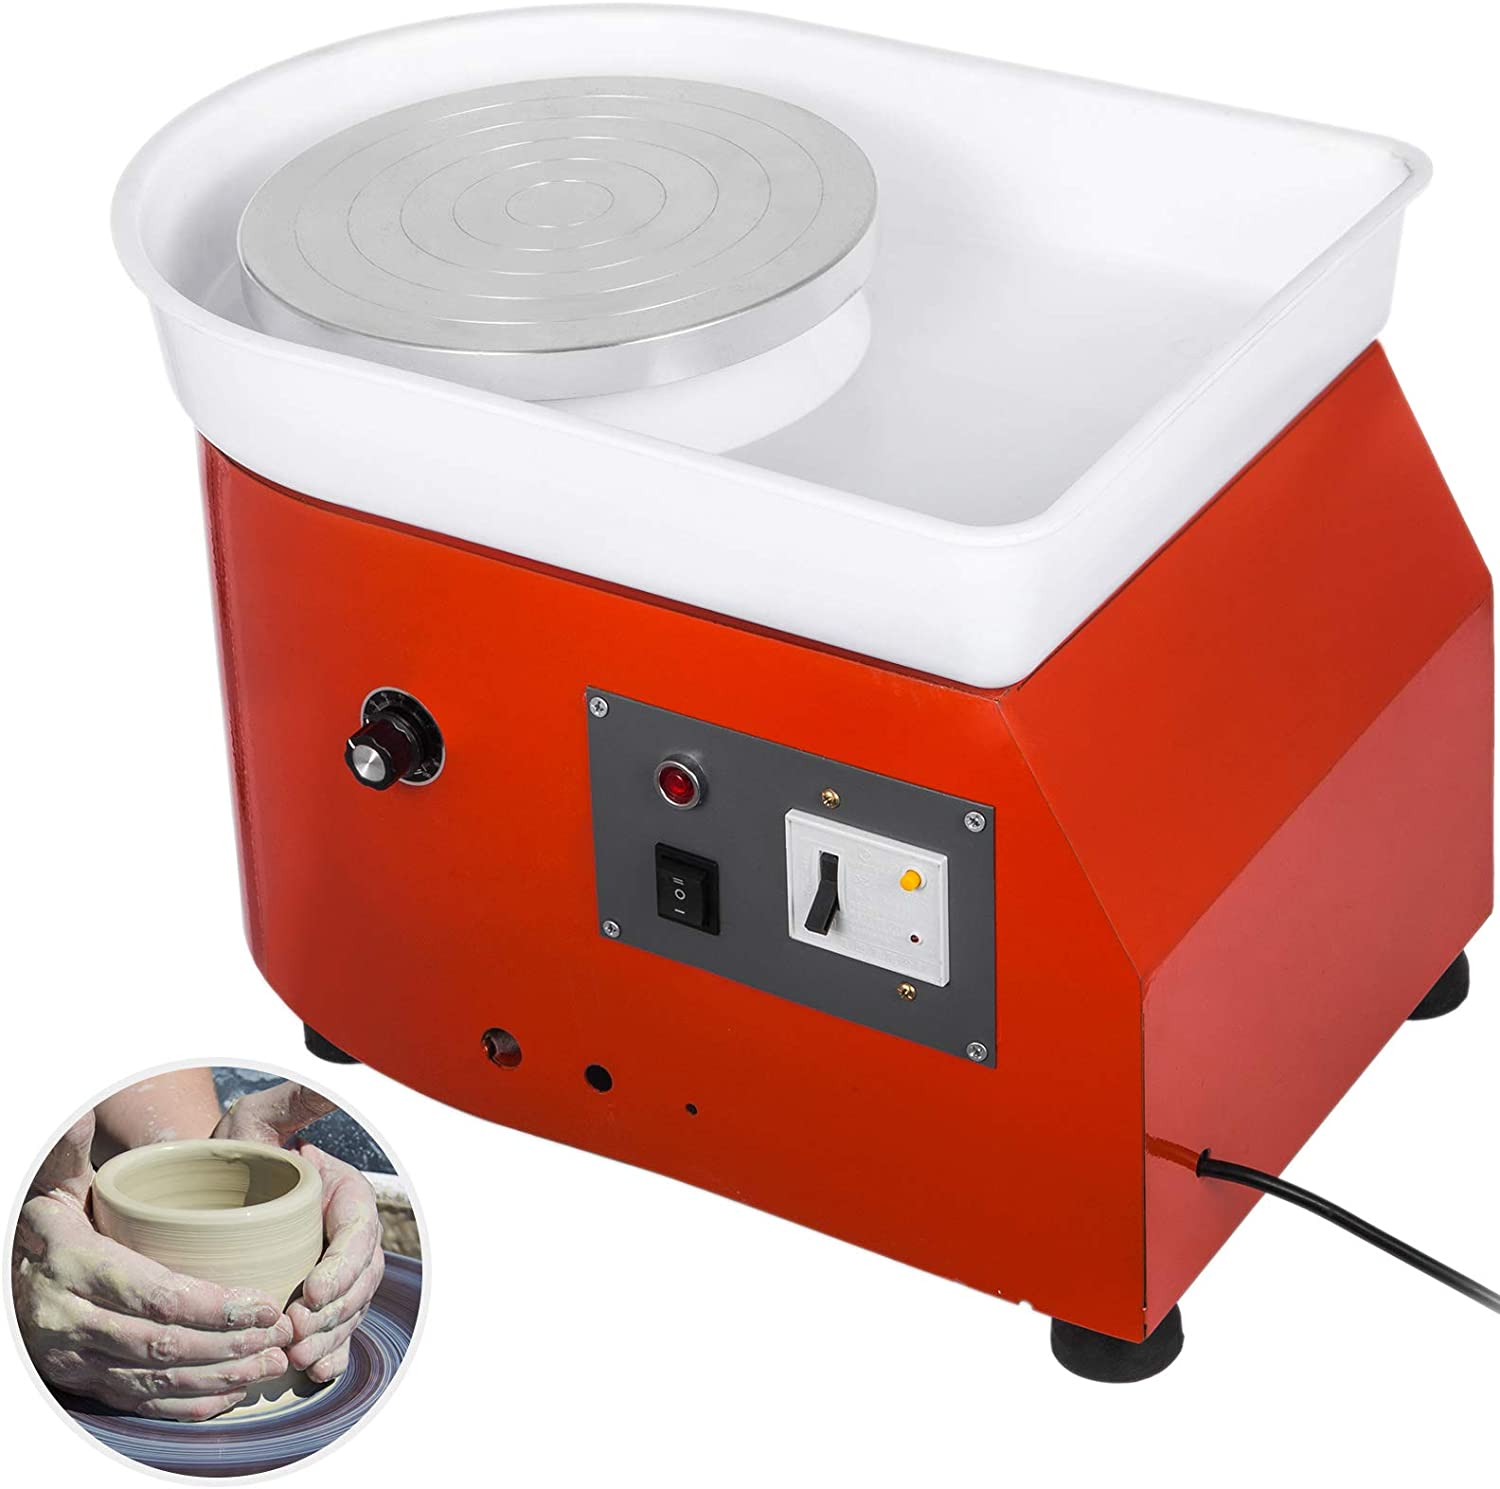 25CM 350W Electric Pottery Wheel Machine Ceramic Clay Work Forming Machine with Lever and Foot Pedal ABS Basin DIY Clay Art Craft Shaping Tools Gray Color